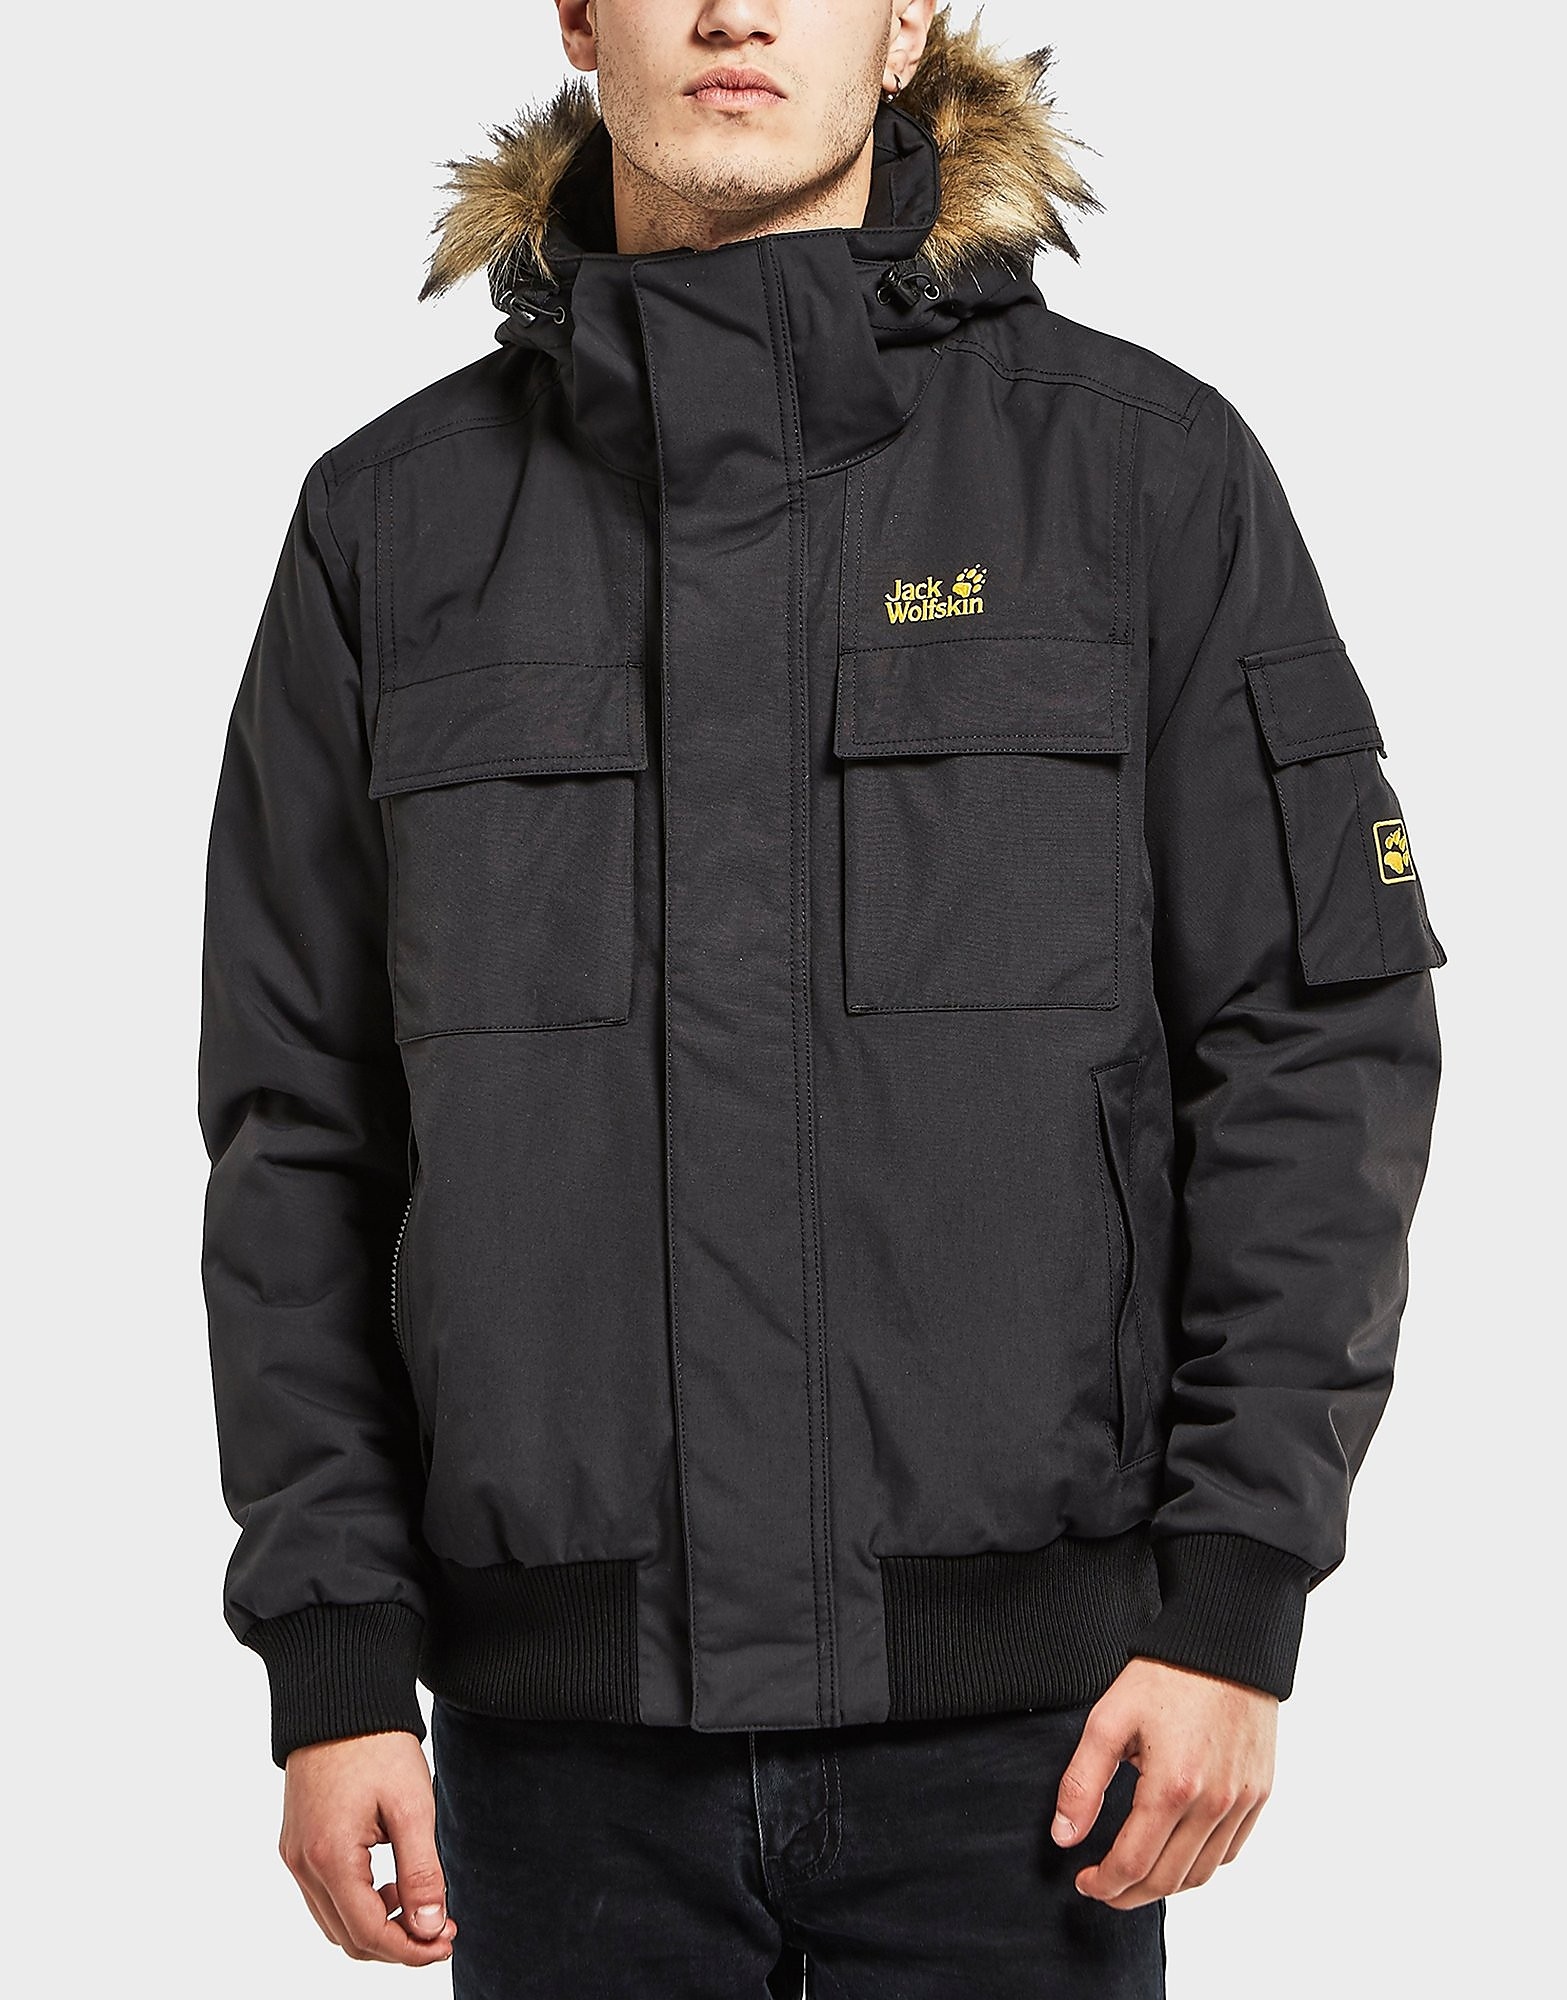 Jack Wolfskin Brockton Parka - Exclusive